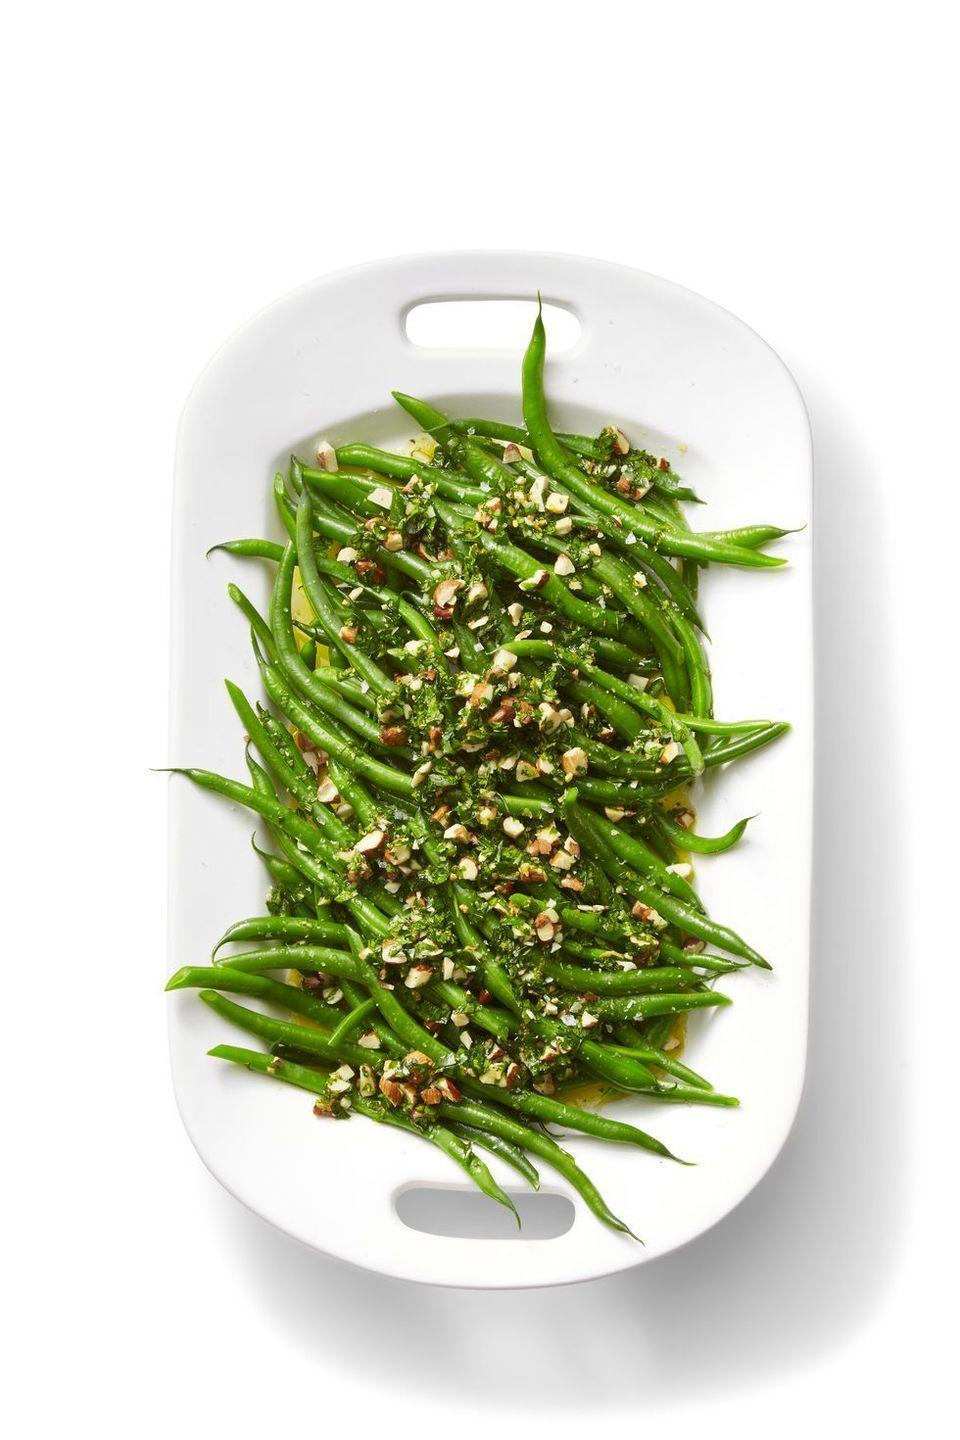 """<p>Give green beans a kick with rosemary, garlic, and orange zest.</p><p><em><a href=""""https://www.womansday.com/food-recipes/food-drinks/a24115941/green-beans-with-orange-and-almond-gremolata-recipe/"""" rel=""""nofollow noopener"""" target=""""_blank"""" data-ylk=""""slk:Get the recipe from Woman's Day »"""" class=""""link rapid-noclick-resp"""">Get the recipe from Woman's Day »</a></em></p>"""